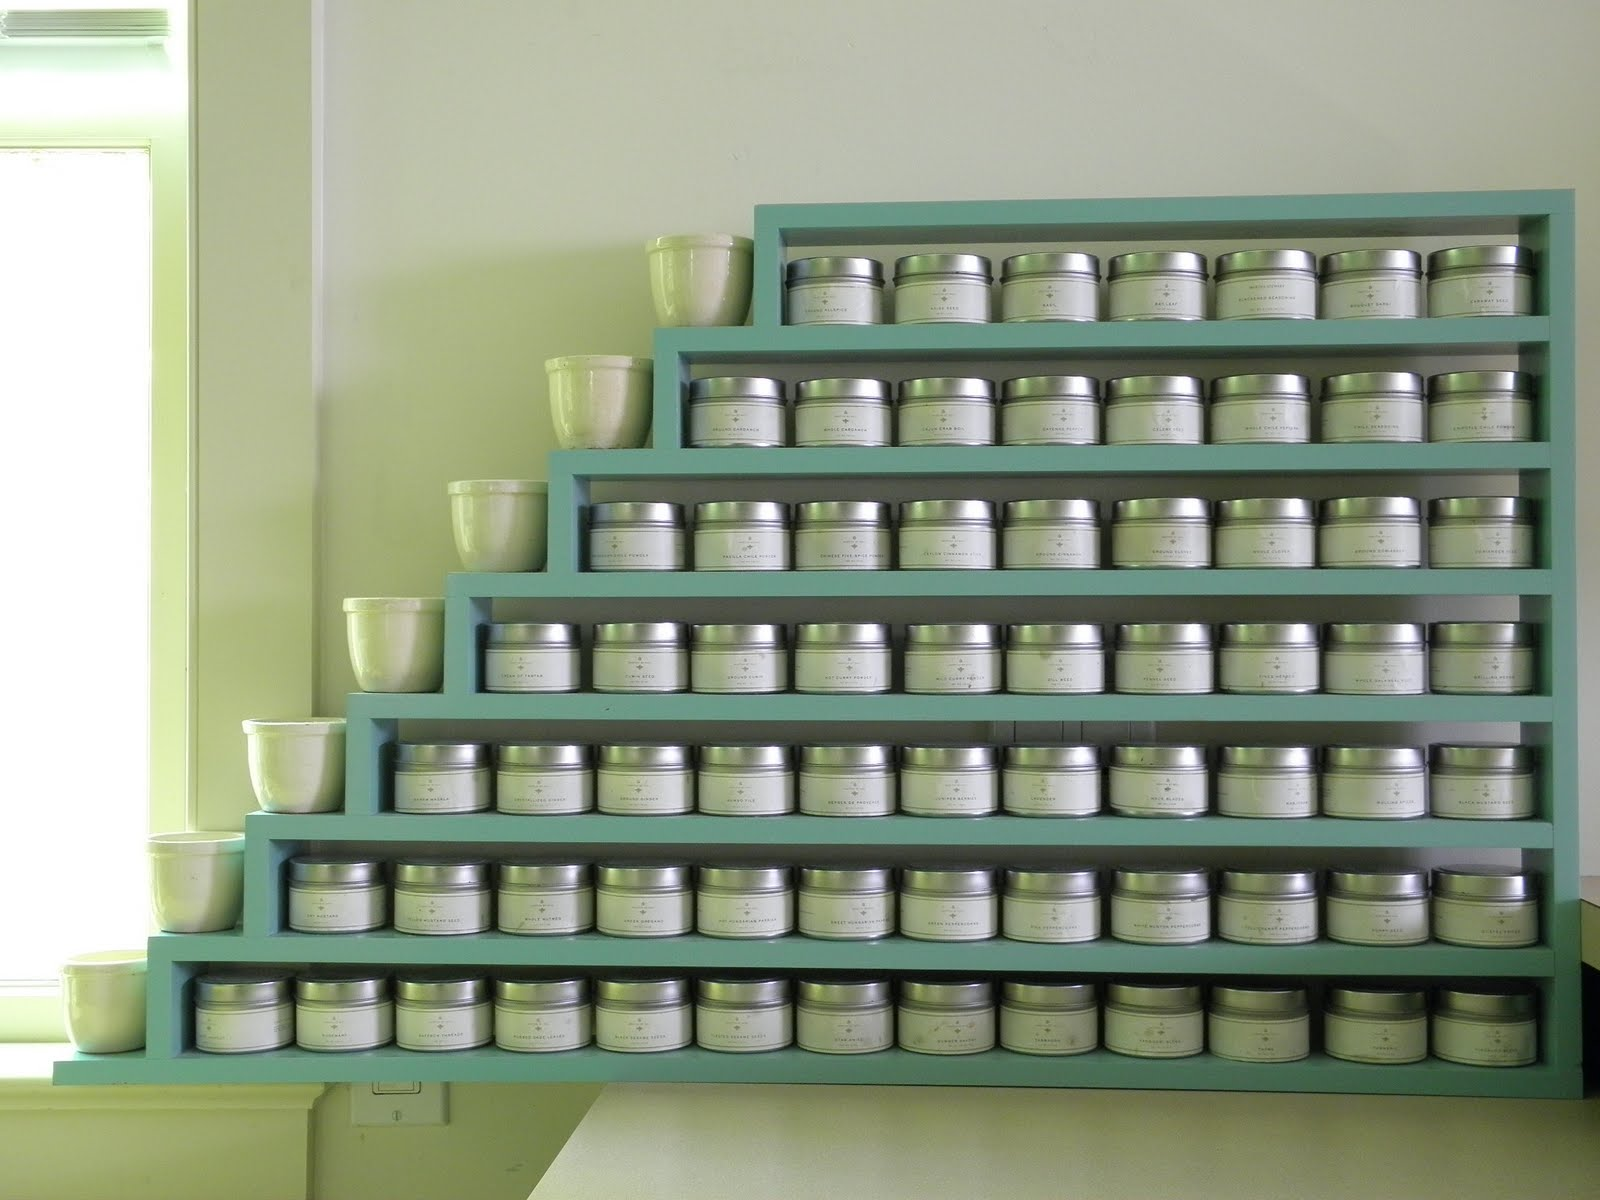 good things by david martha by mail spice rack